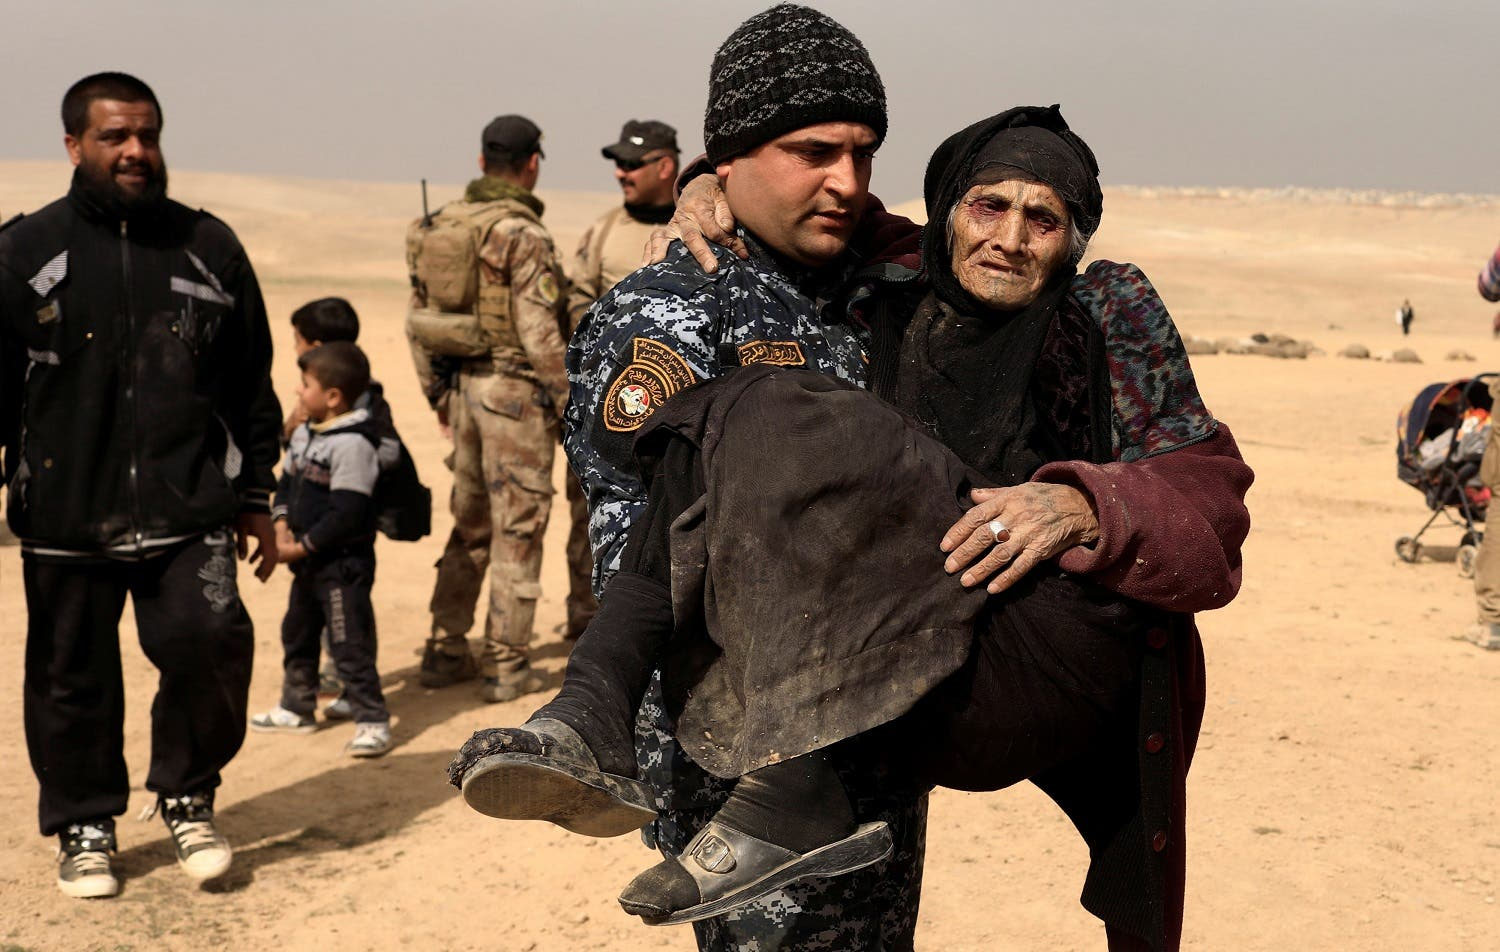 Khatla Ali Abdullah, 90, a displaced Iraqi women who fled her home, is carried by a member of the Iraqi forces in the desert in western Mosul, Iraq February 27, 2017. REUTERS